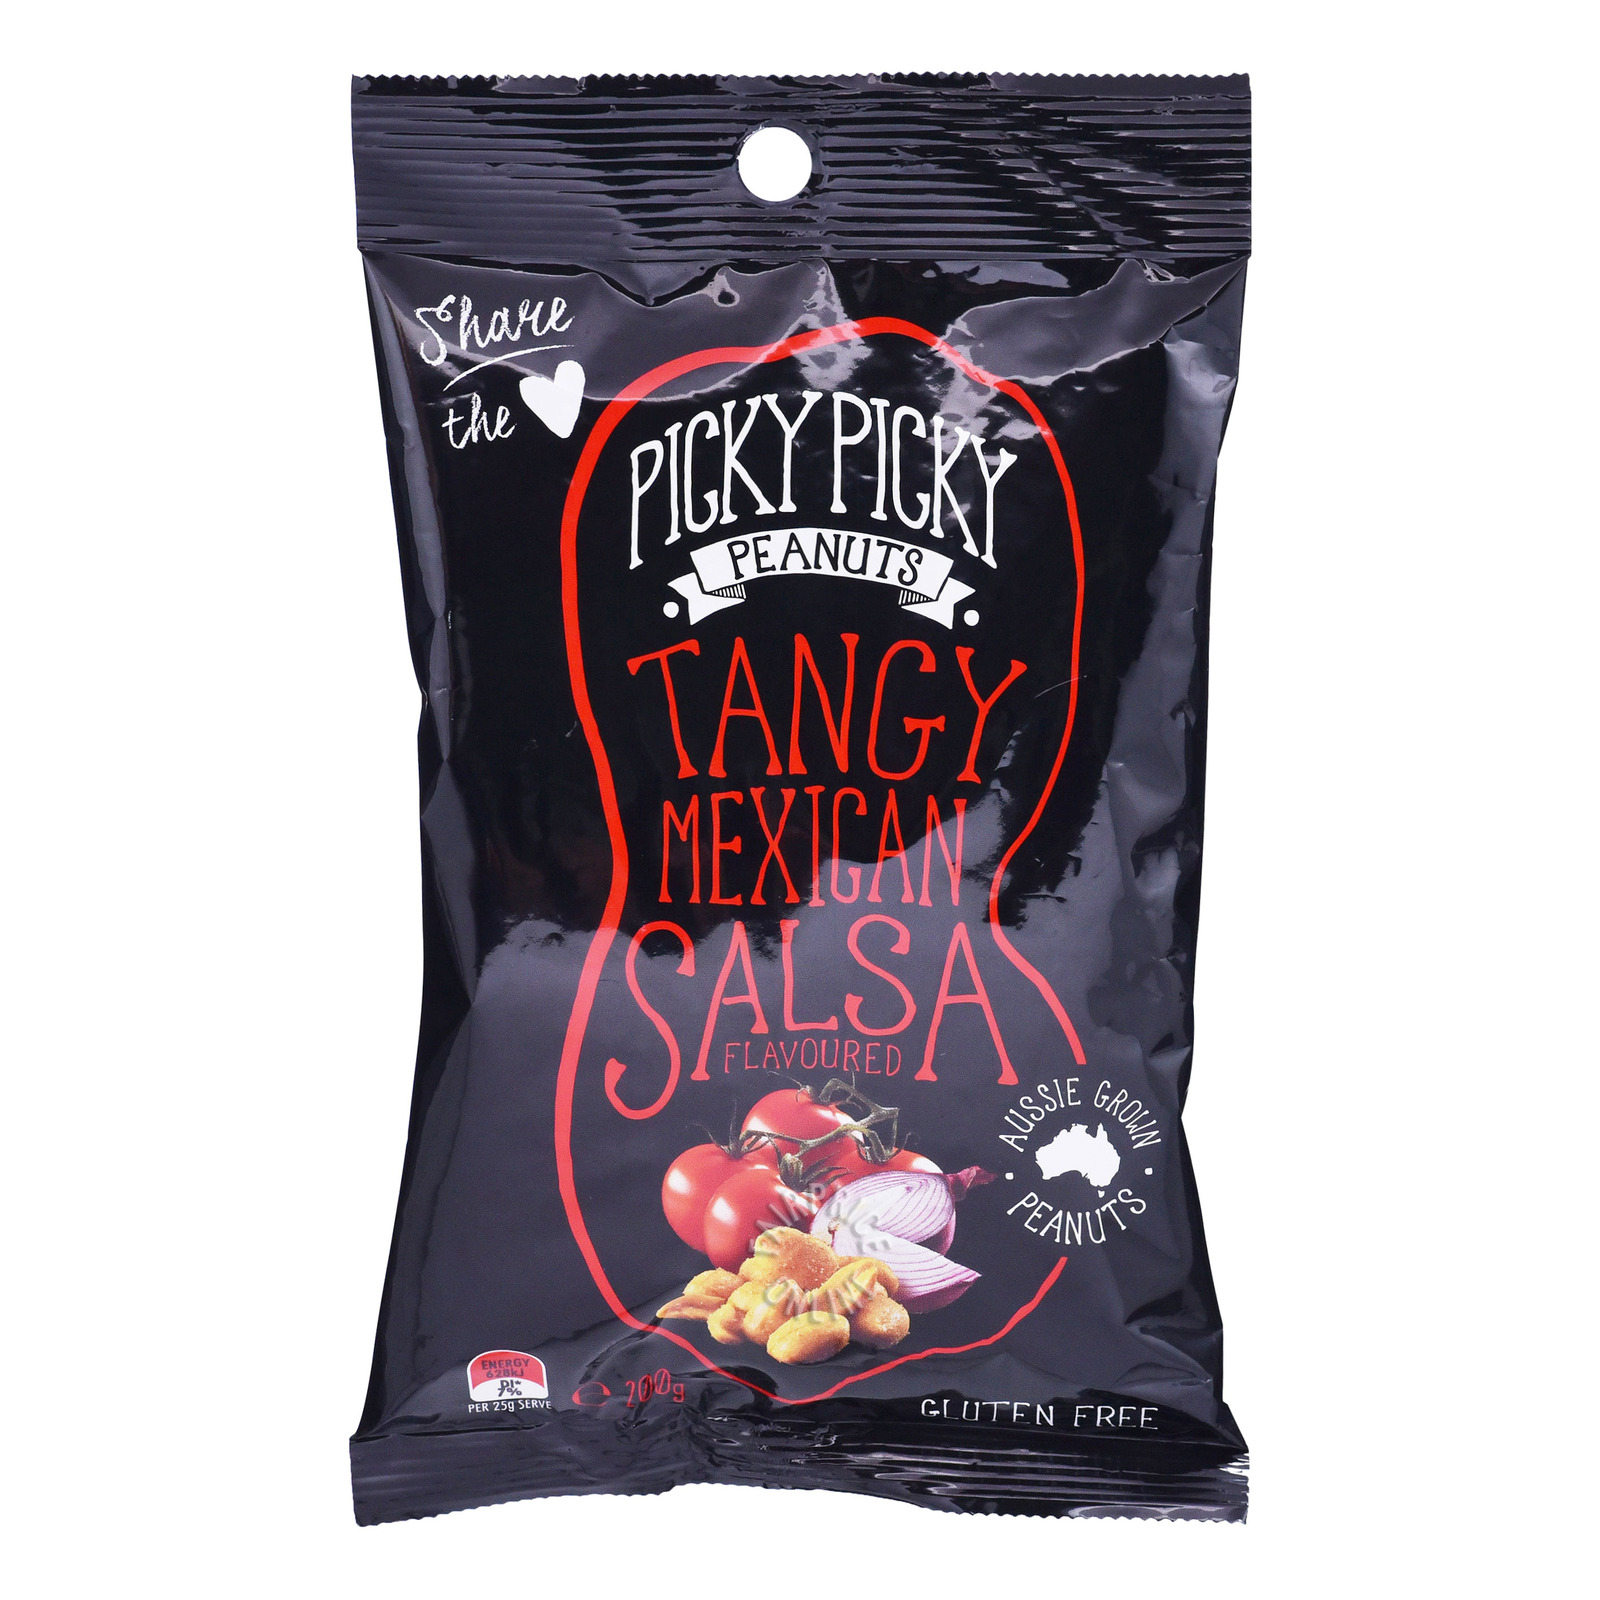 Picky Picky Peanuts Nuts - Tangy Mexican Salsa